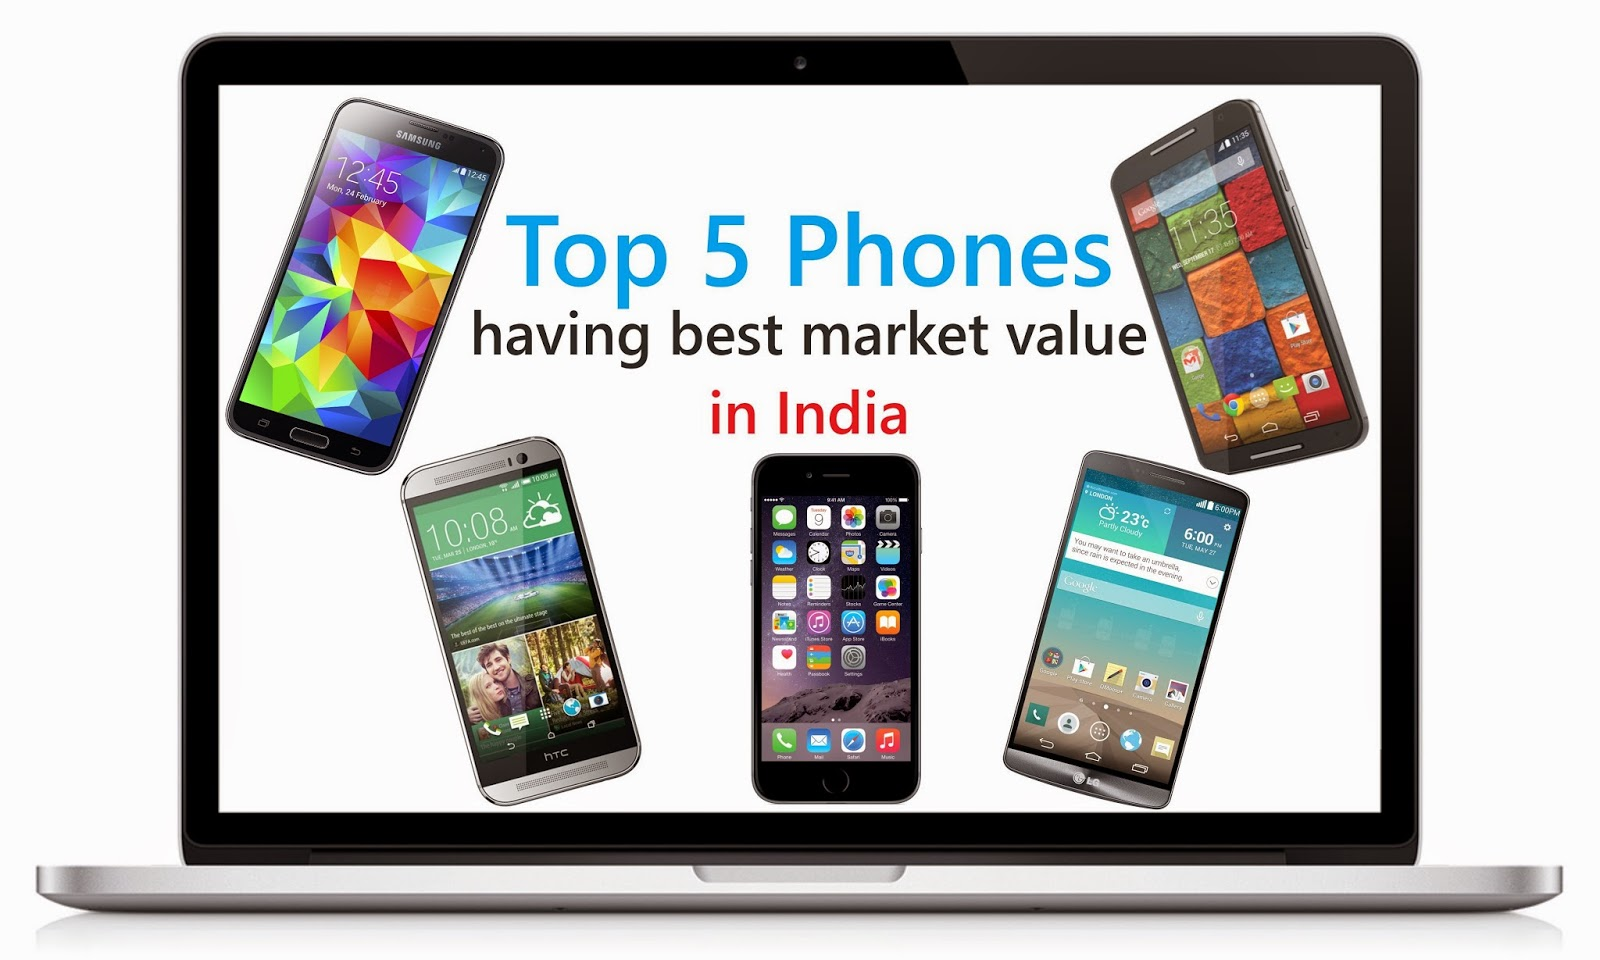 Top 5 Phones Having The Best Market Value in India